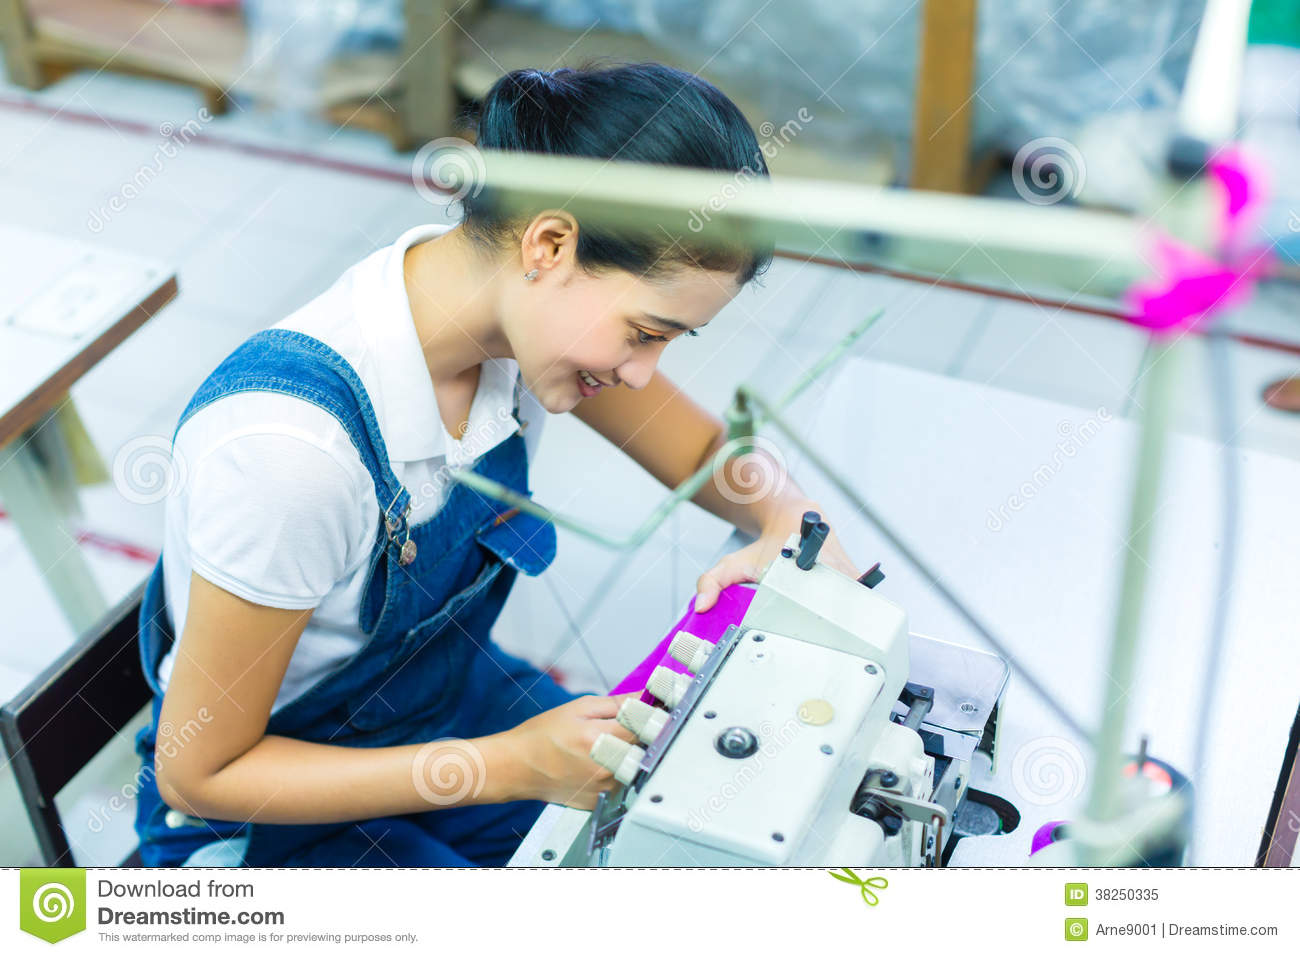 Indonesian seamstress in a textile factory